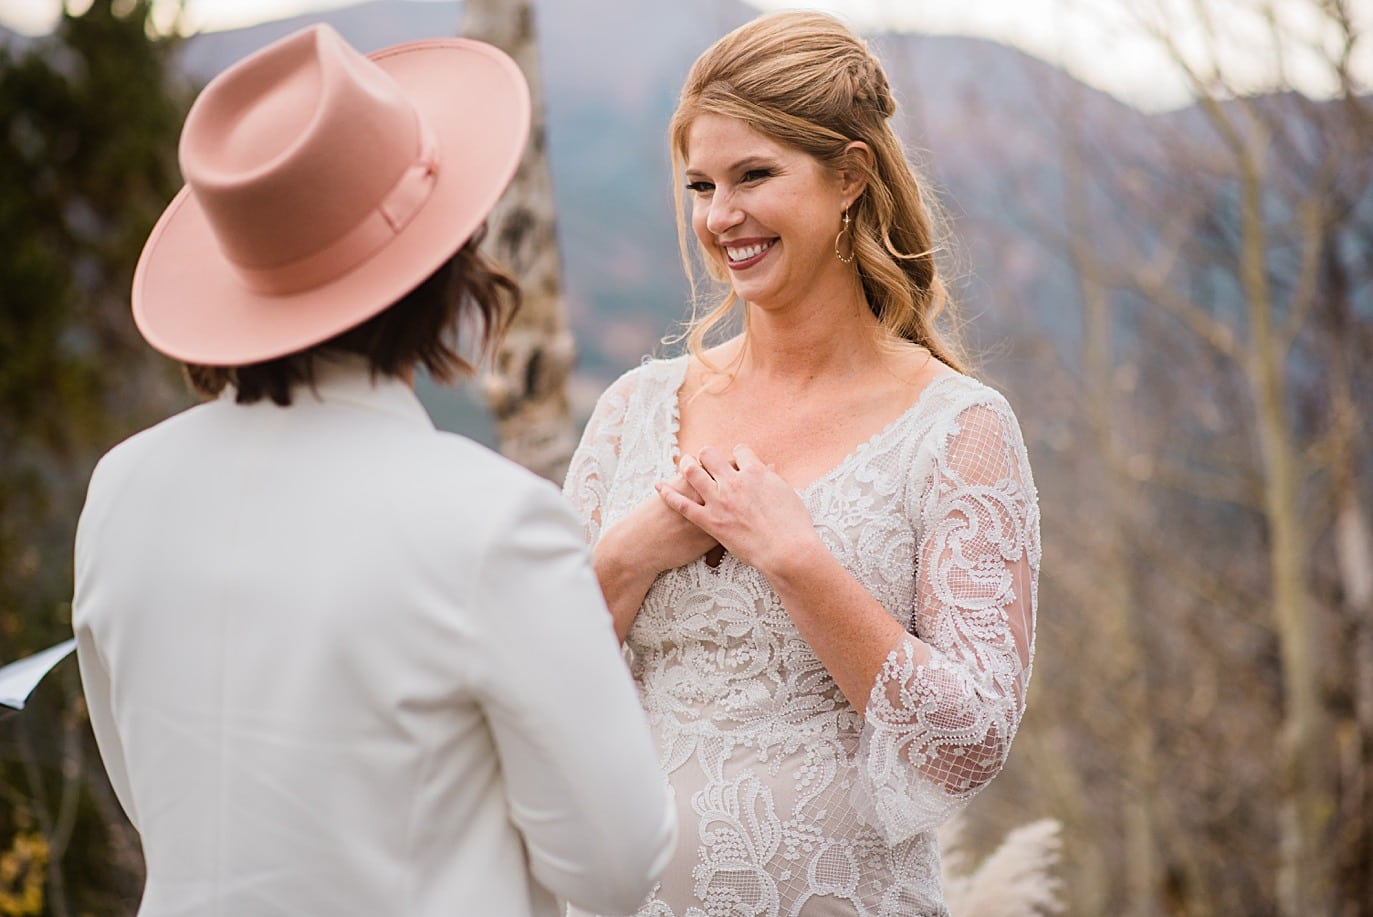 brides warm rings during intimate wedding ceremony at Boreas Pass microwedding by Colorado gay wedding photographer Jennie Crate